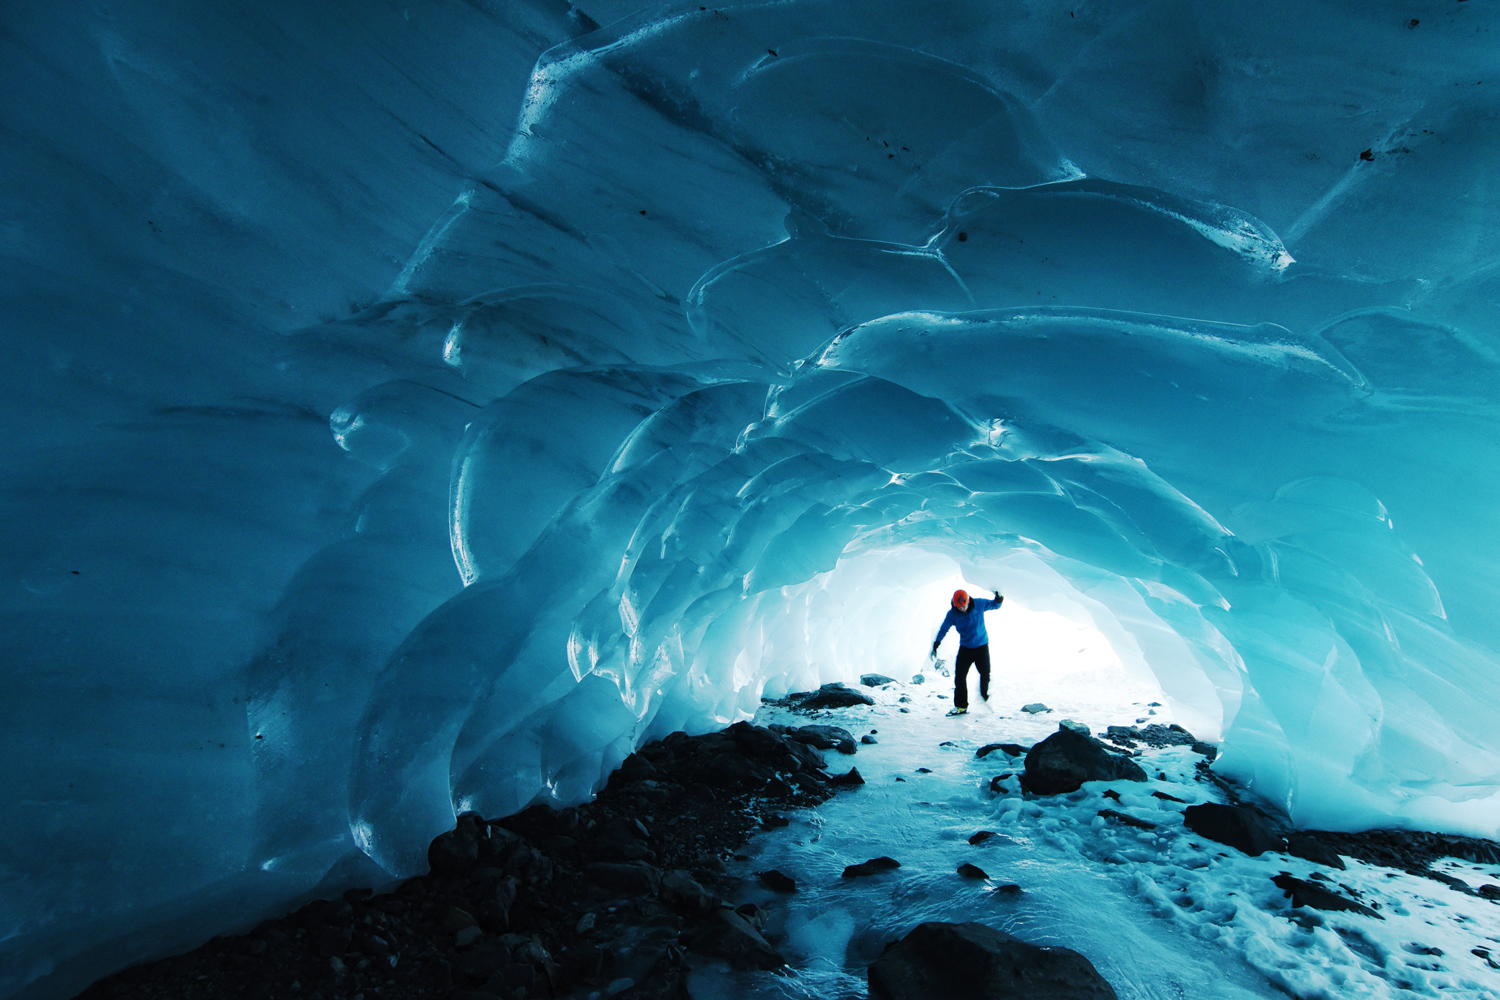 Skating in a small ice cave below Byron Glacier, in the Chugach National Forest of Alaska. (Paxson Woebler/Unsplash)